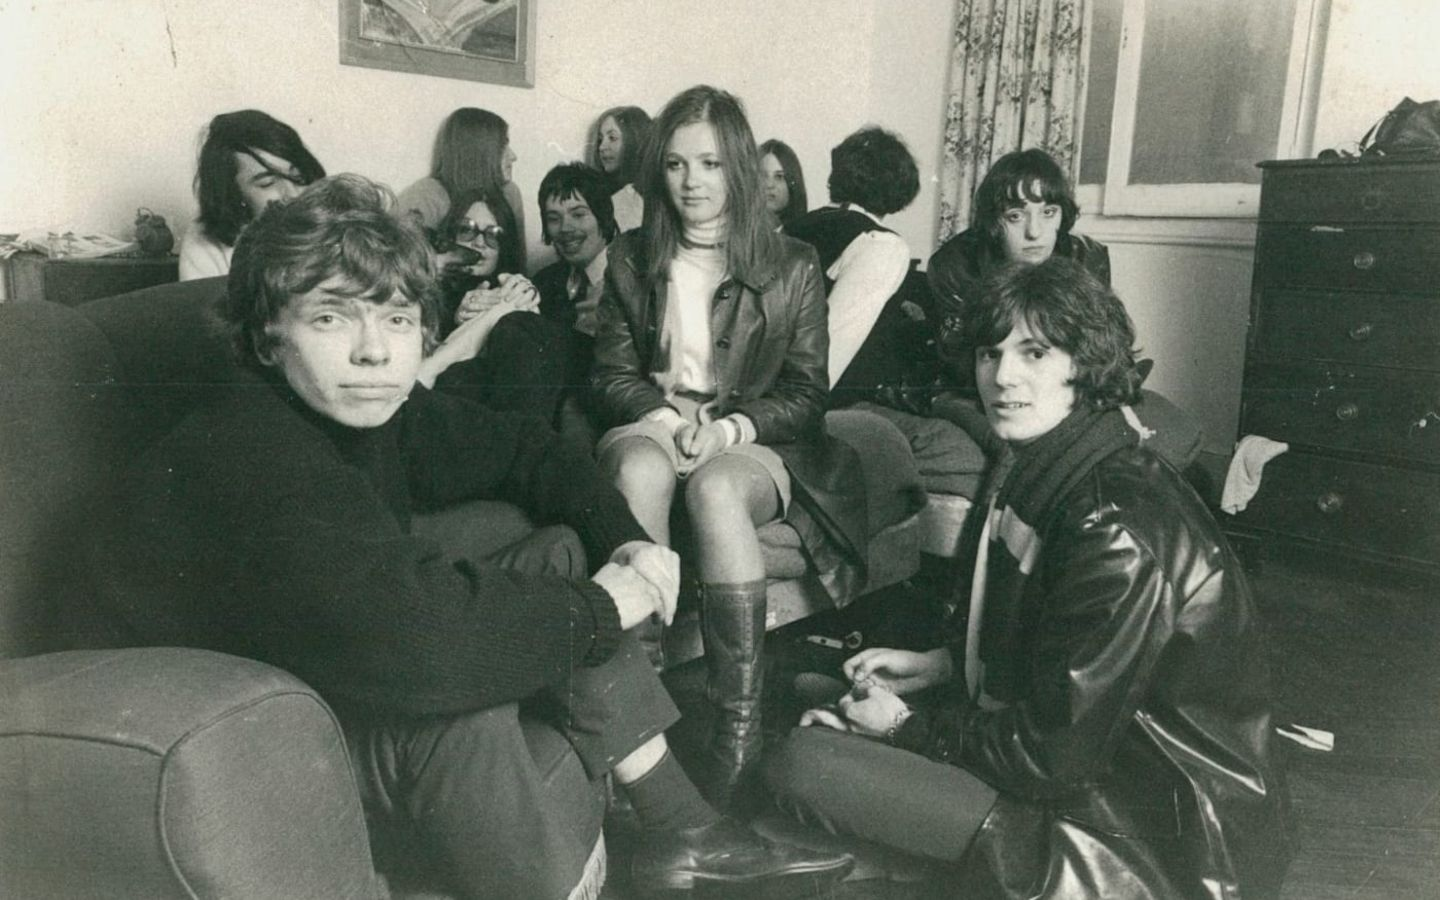 Richard Branson and friends when they were students